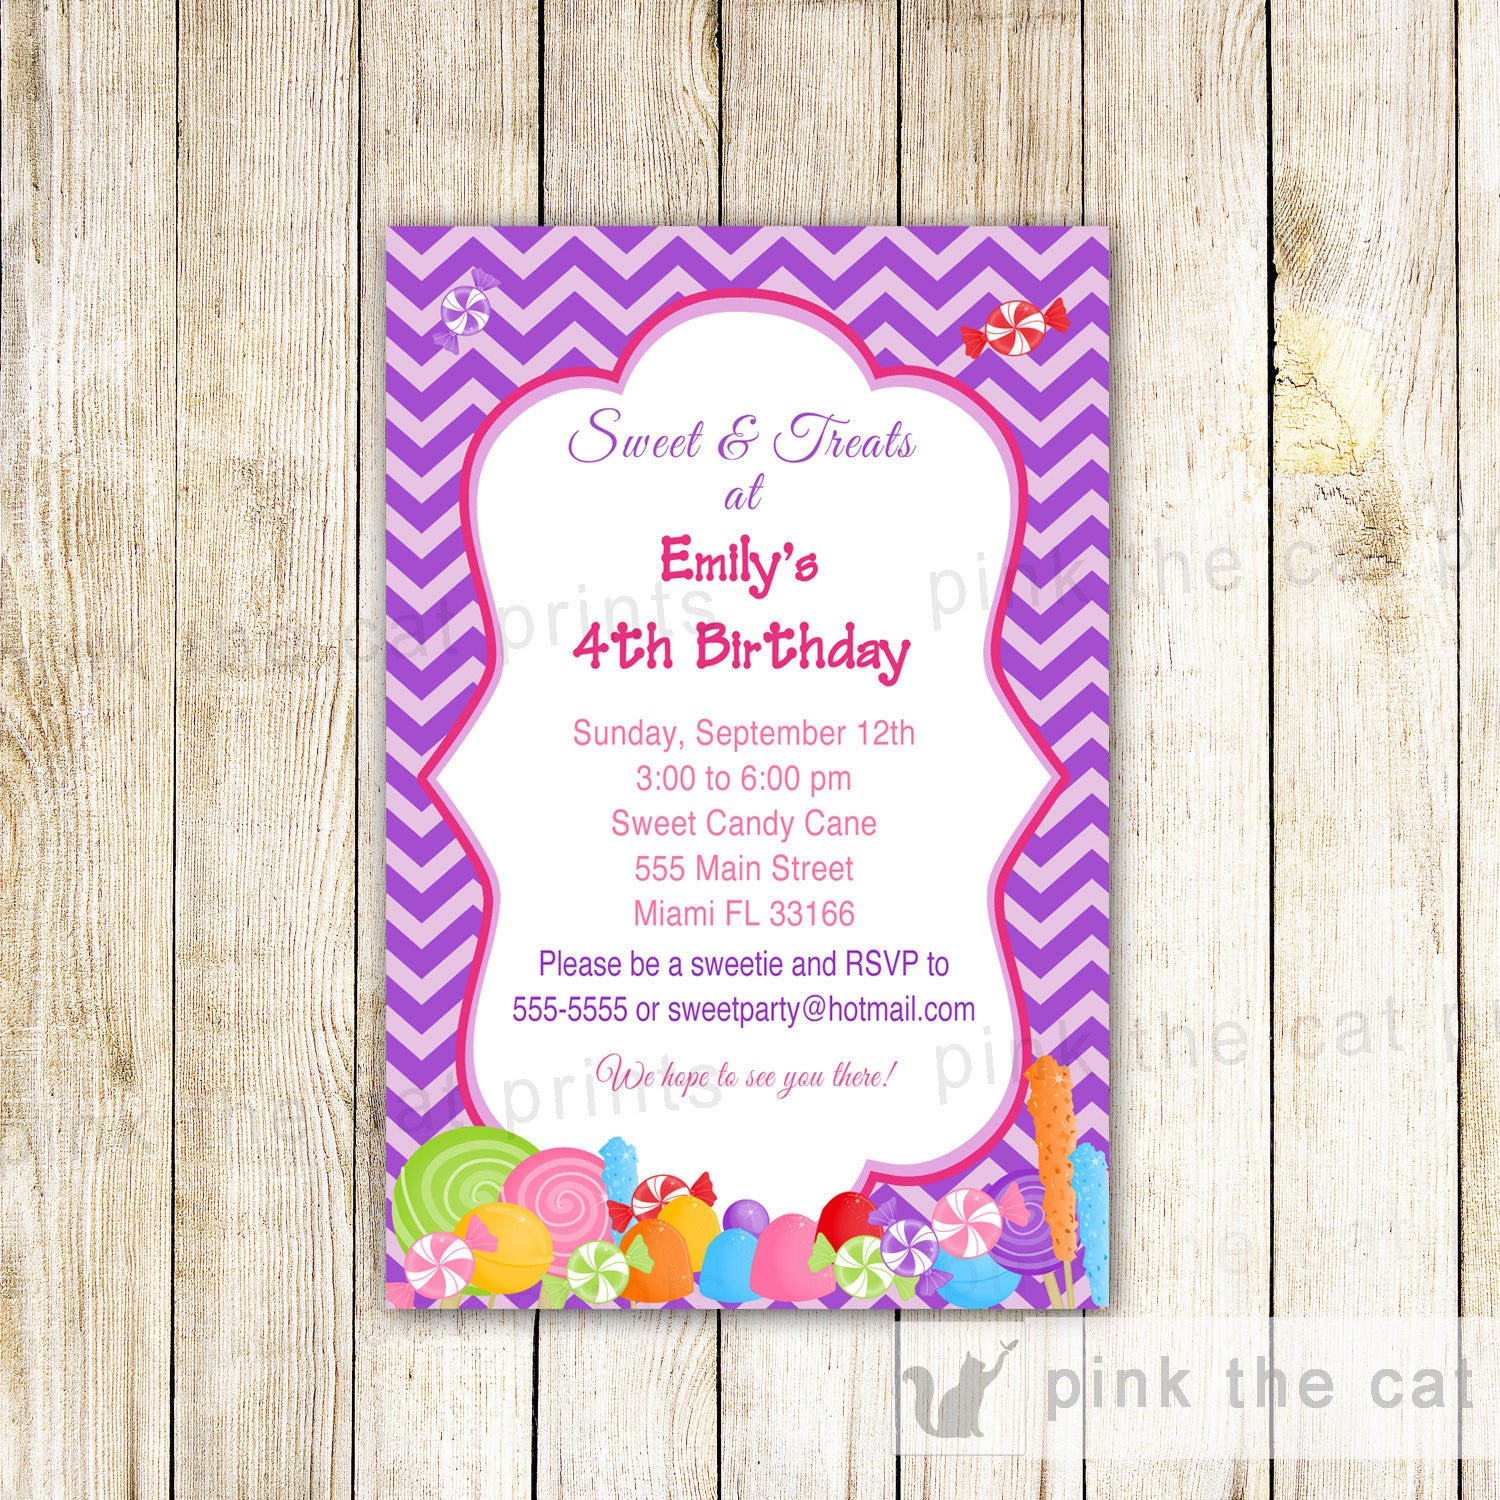 Candy Invitation Girl Birthday Party Baby Shower – Pink The Cat